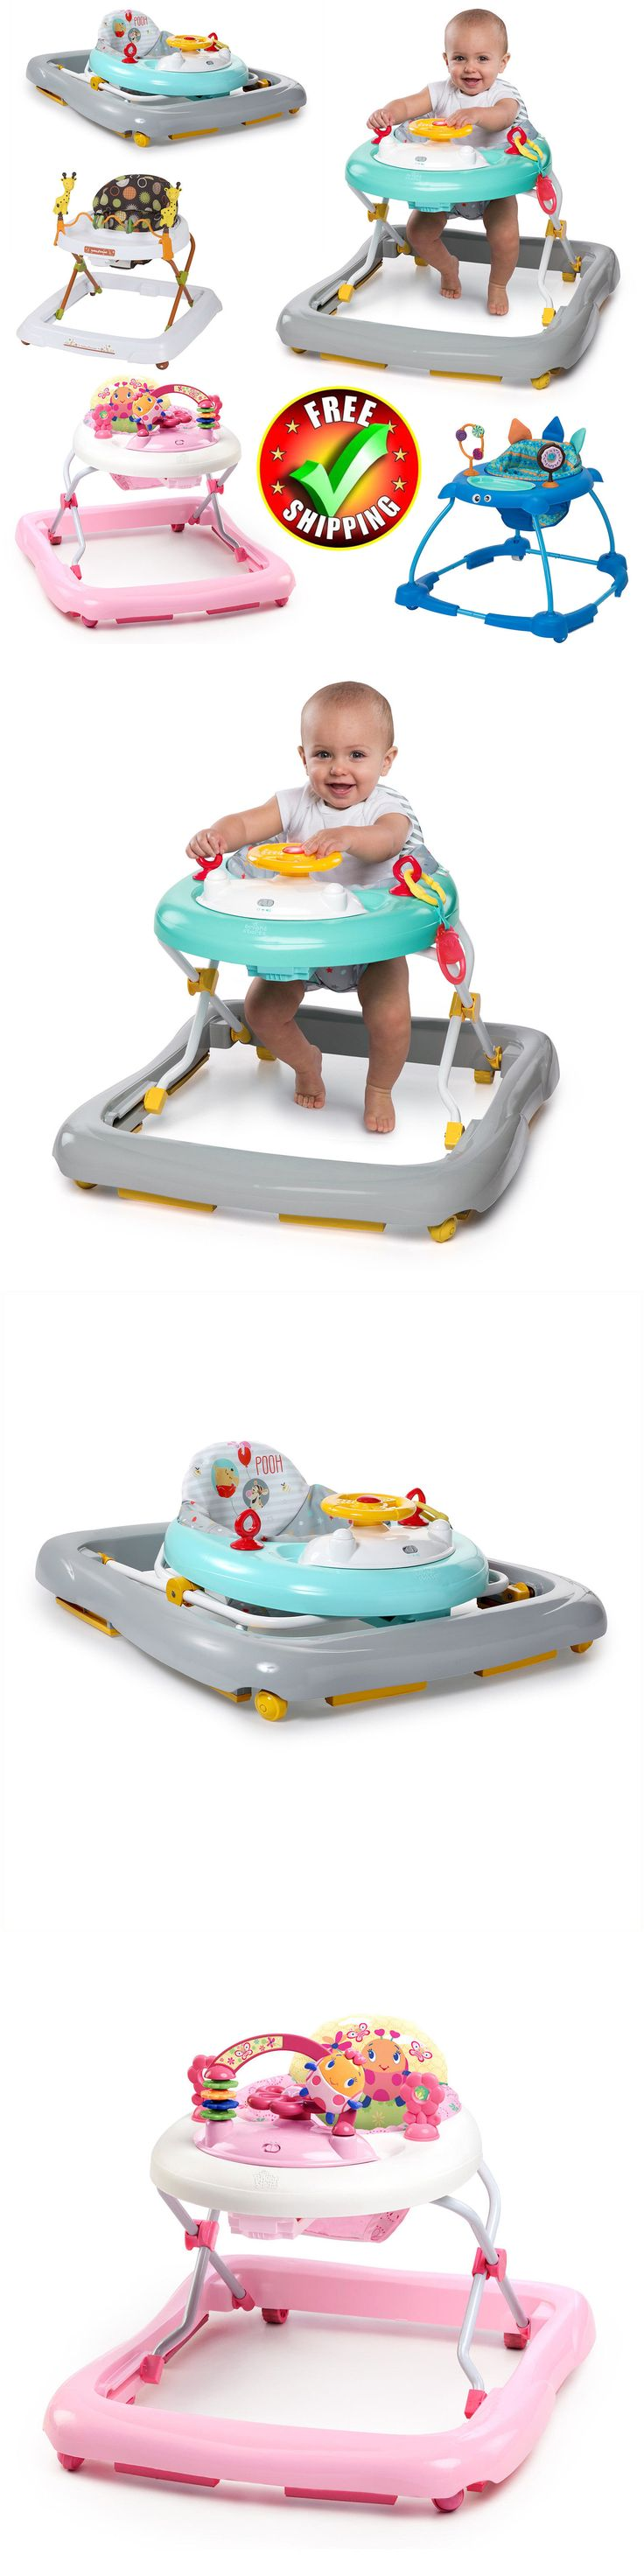 Baby Gear 100223: Baby Walker Activity Center Gym Exersaucer Child Toy Toddler Car Disney New -> BUY IT NOW ONLY: $51.99 on eBay!